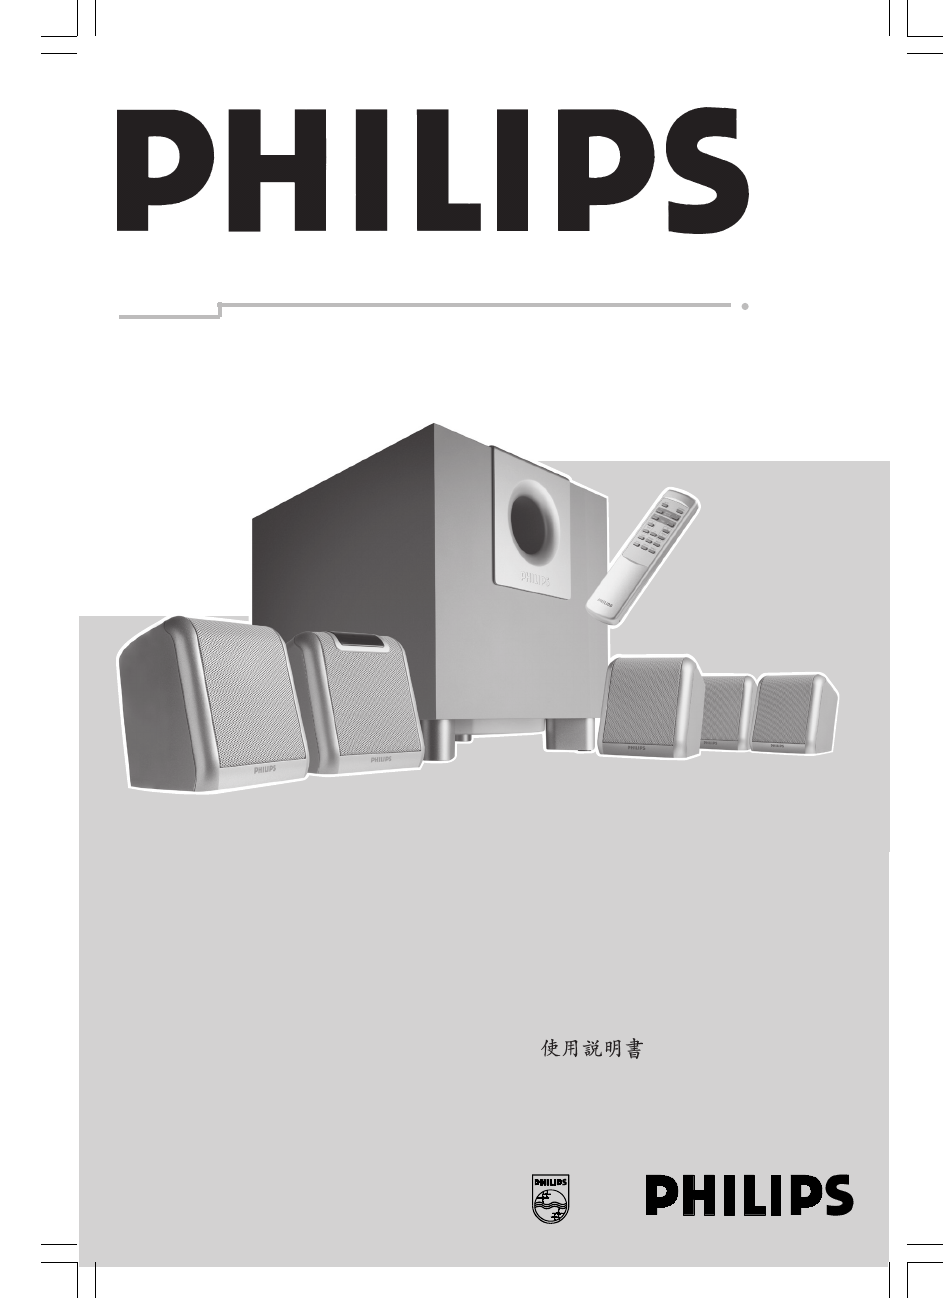 philips mp3 player 600 mms 506 user guide manualsonline com rh portablemedia manualsonline com Philips Module Repair Philips Module Repair